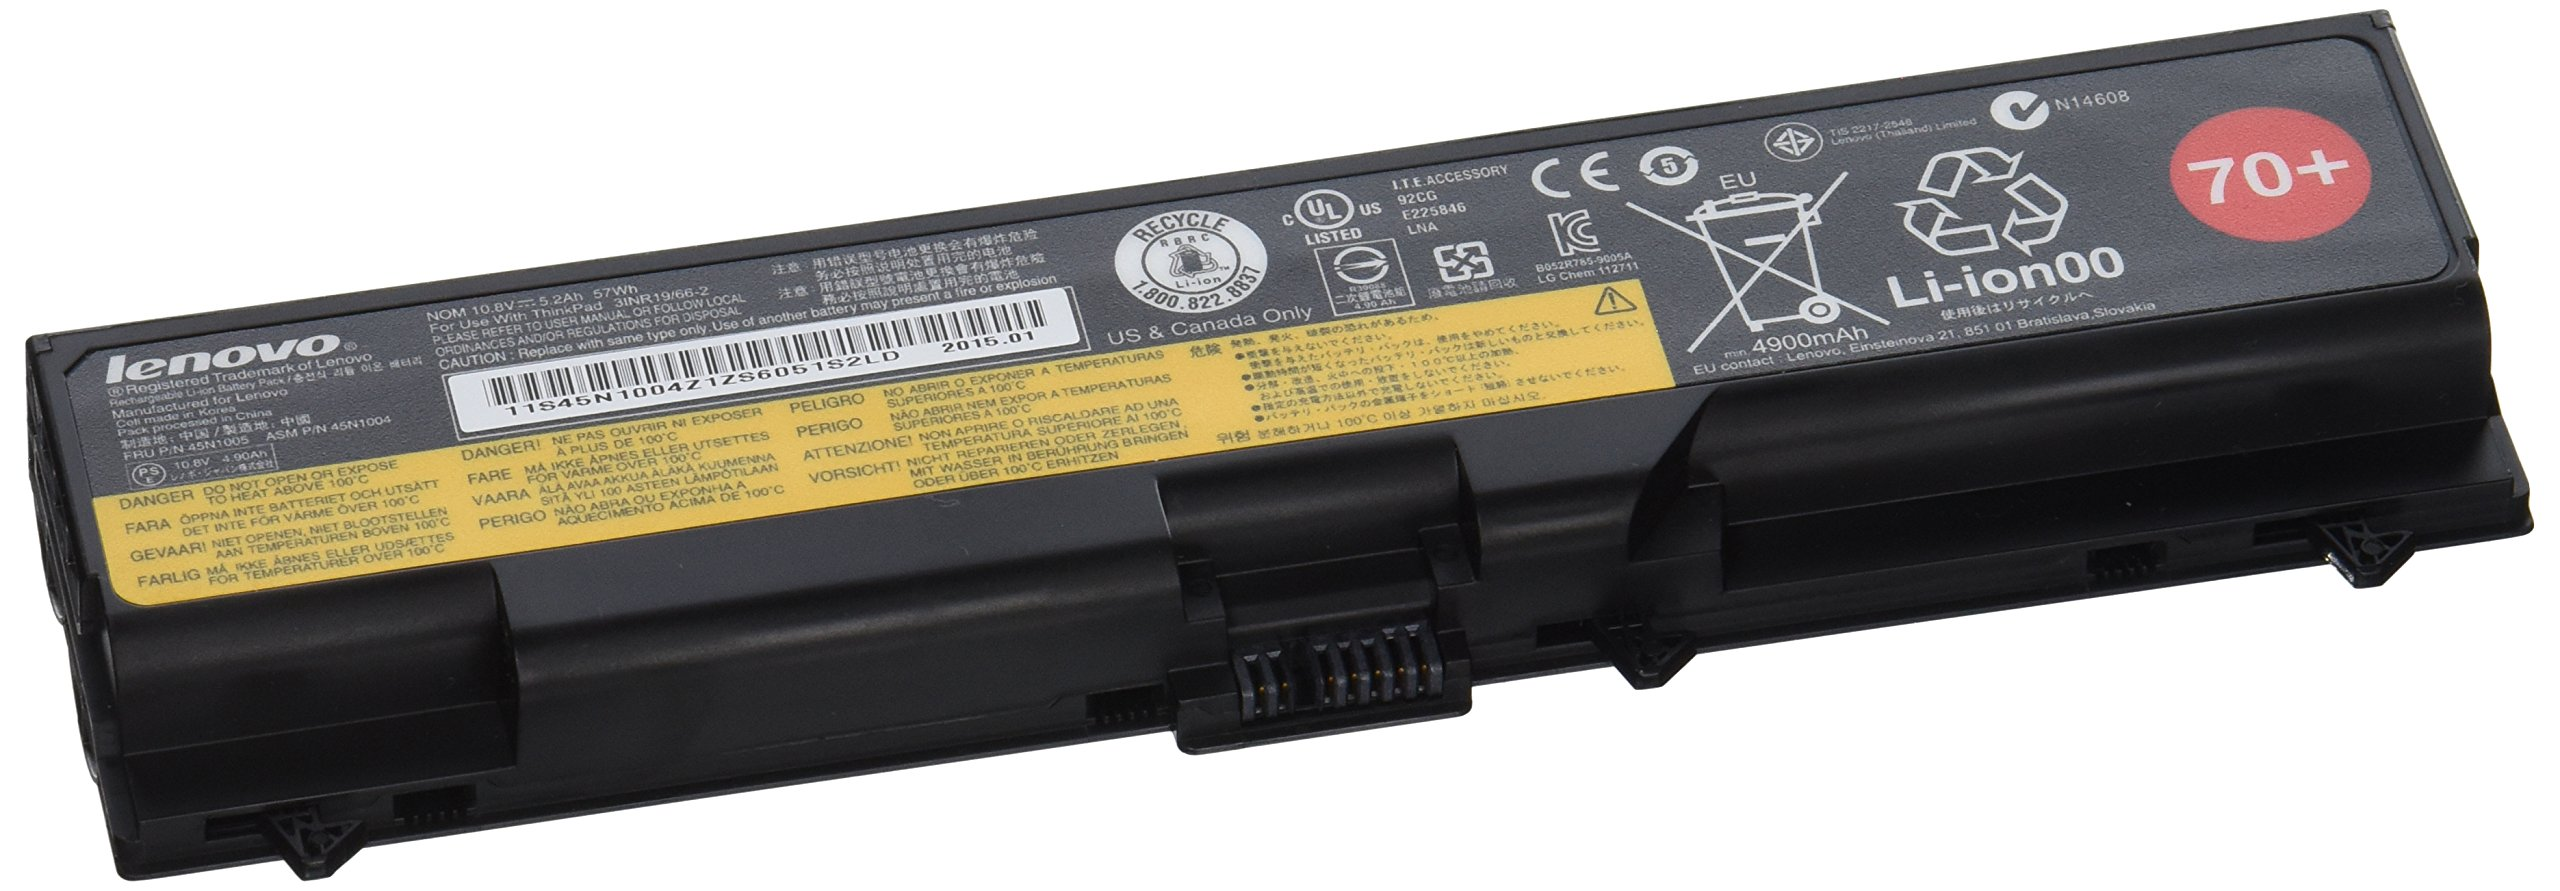 Lenovo Retail Part Number 0A36302, Thinkpad Battery 70+ , 6 Cell Original Factory Packaging For Select